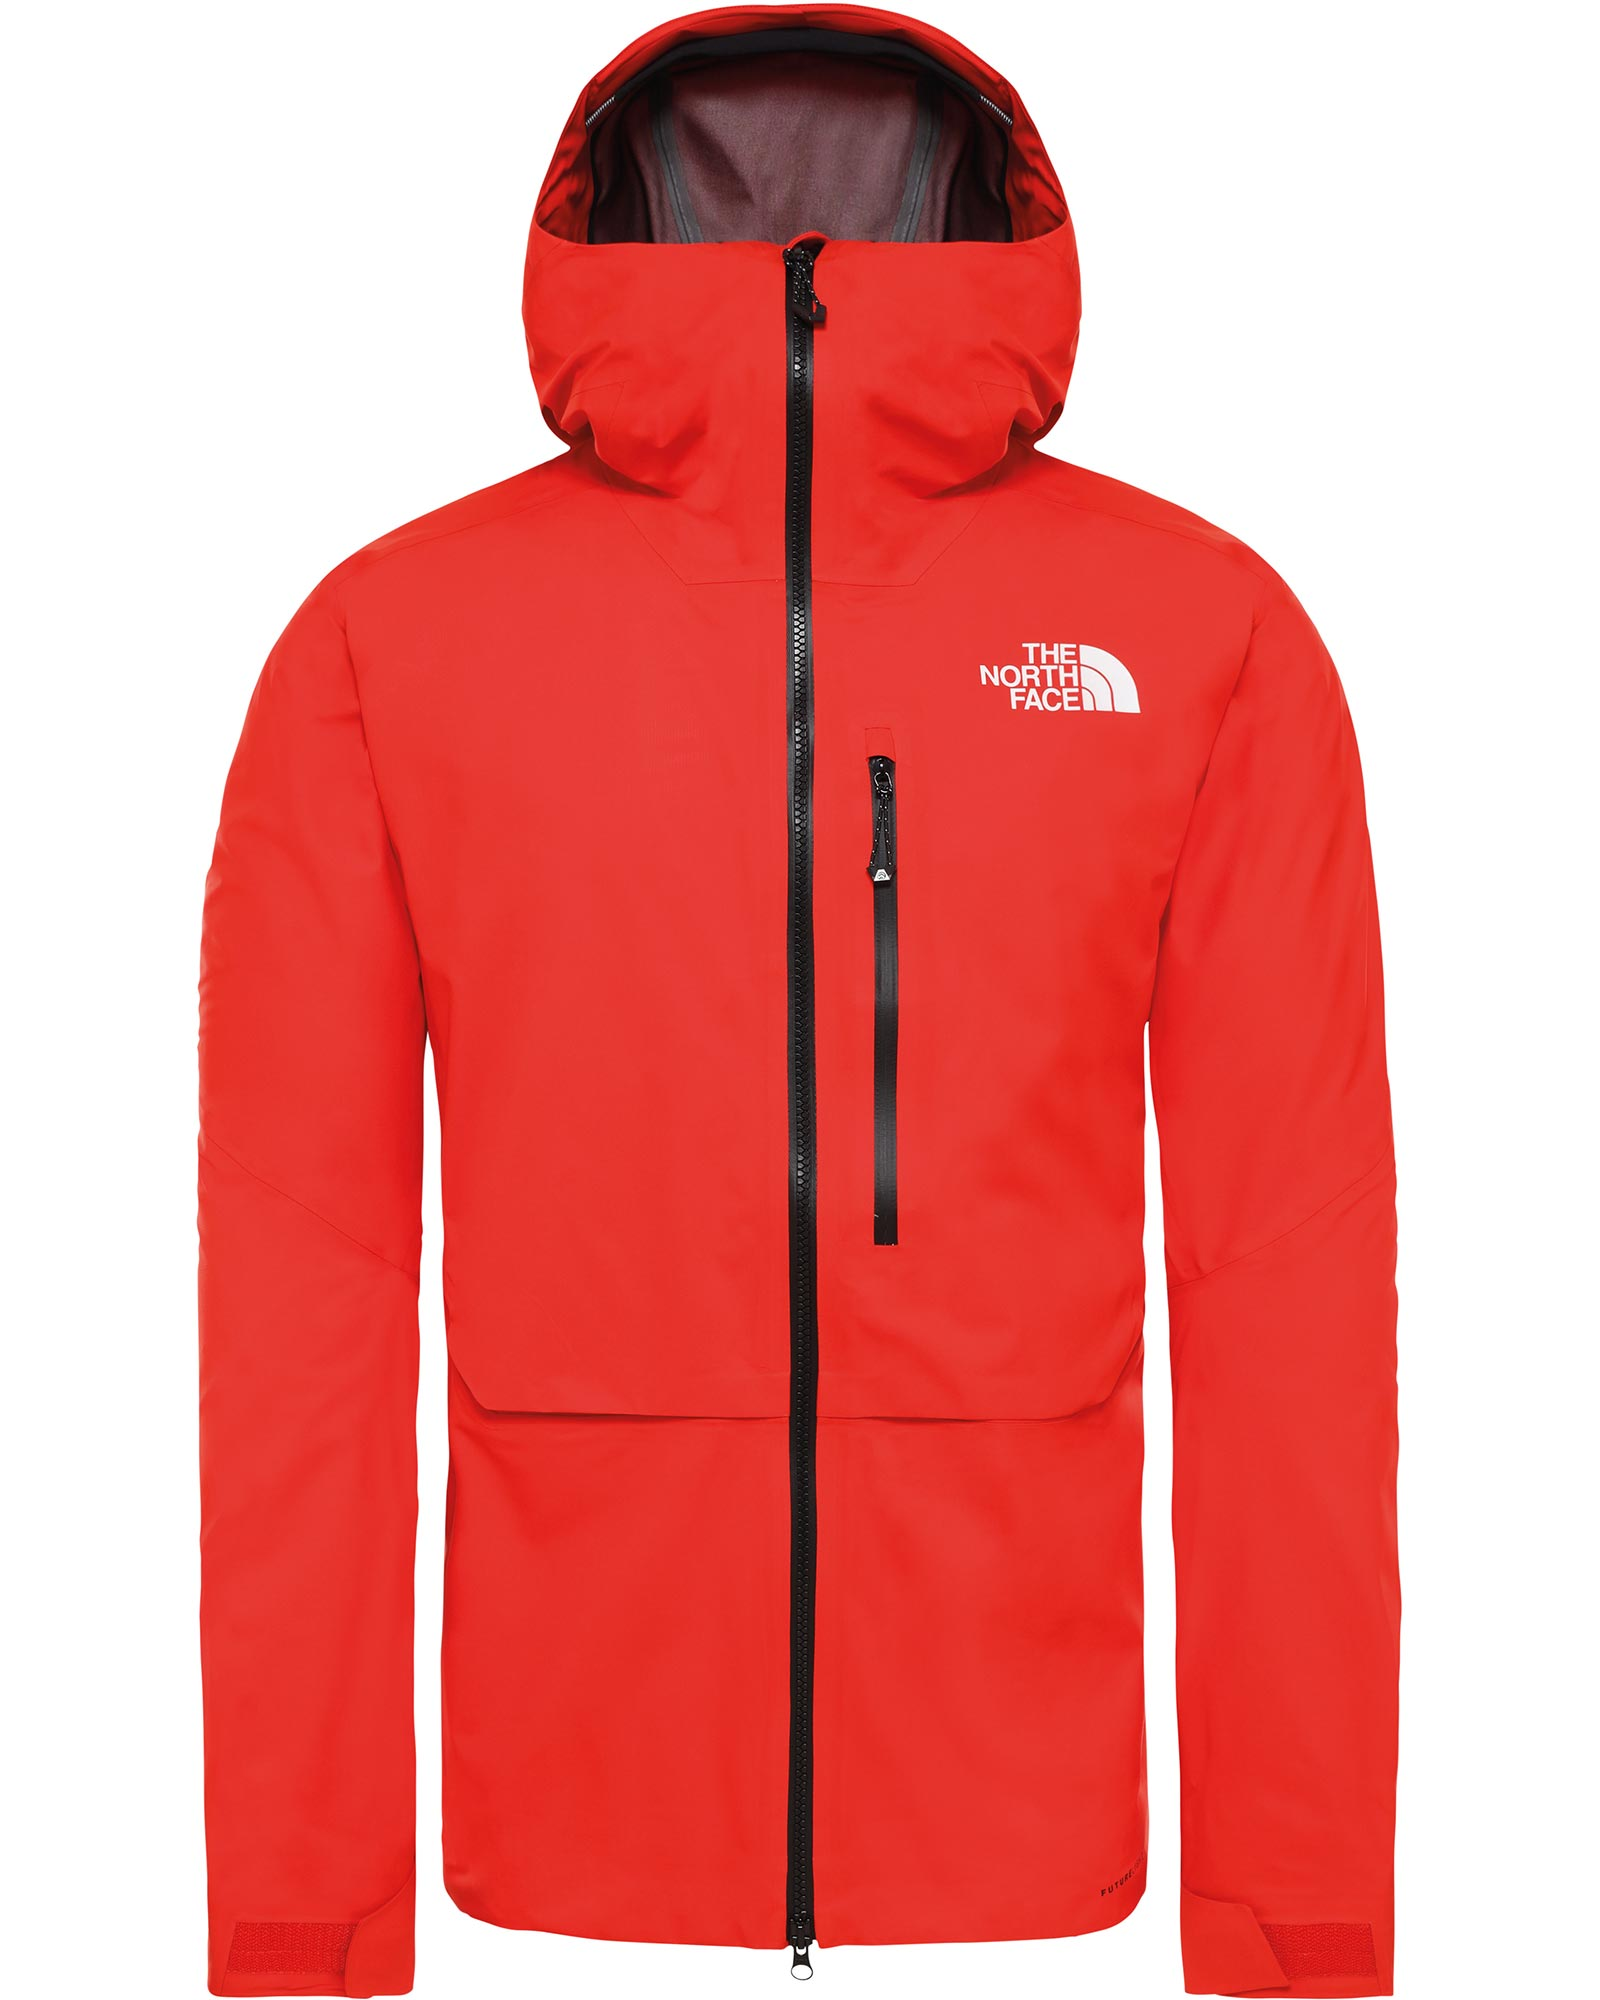 The North Face Men's Summit Series L5 LT FUTURELIGHT Jacket Fiery Red 0